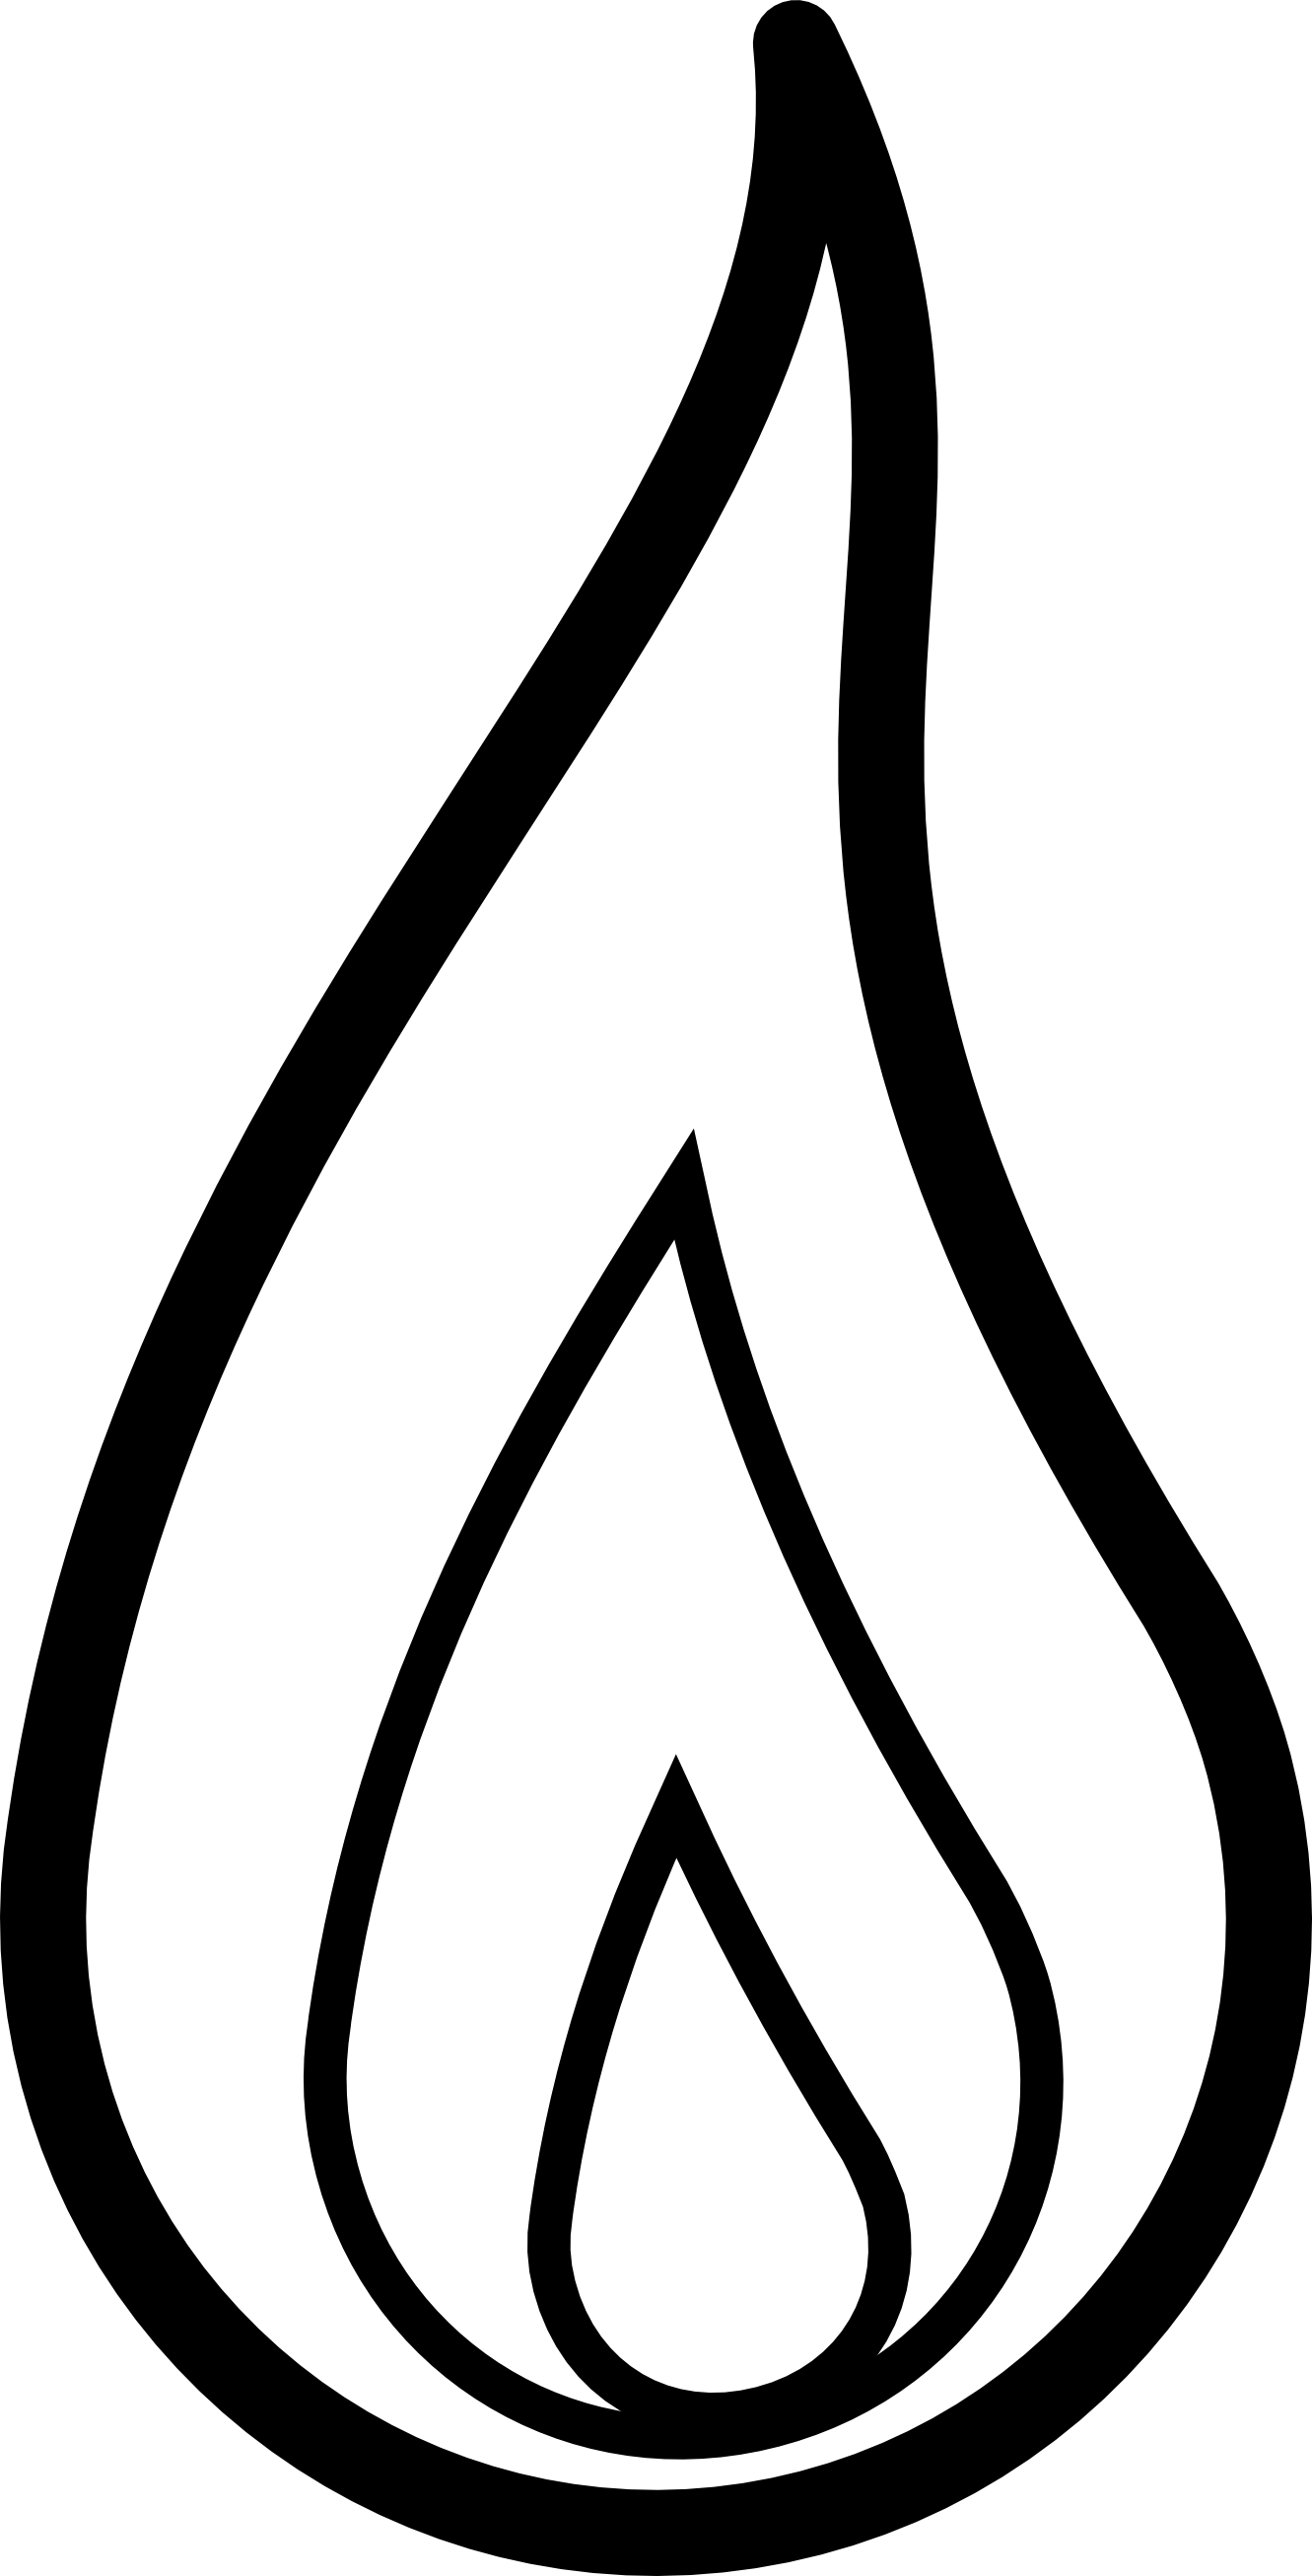 Fire clipart simple. Flames black and white